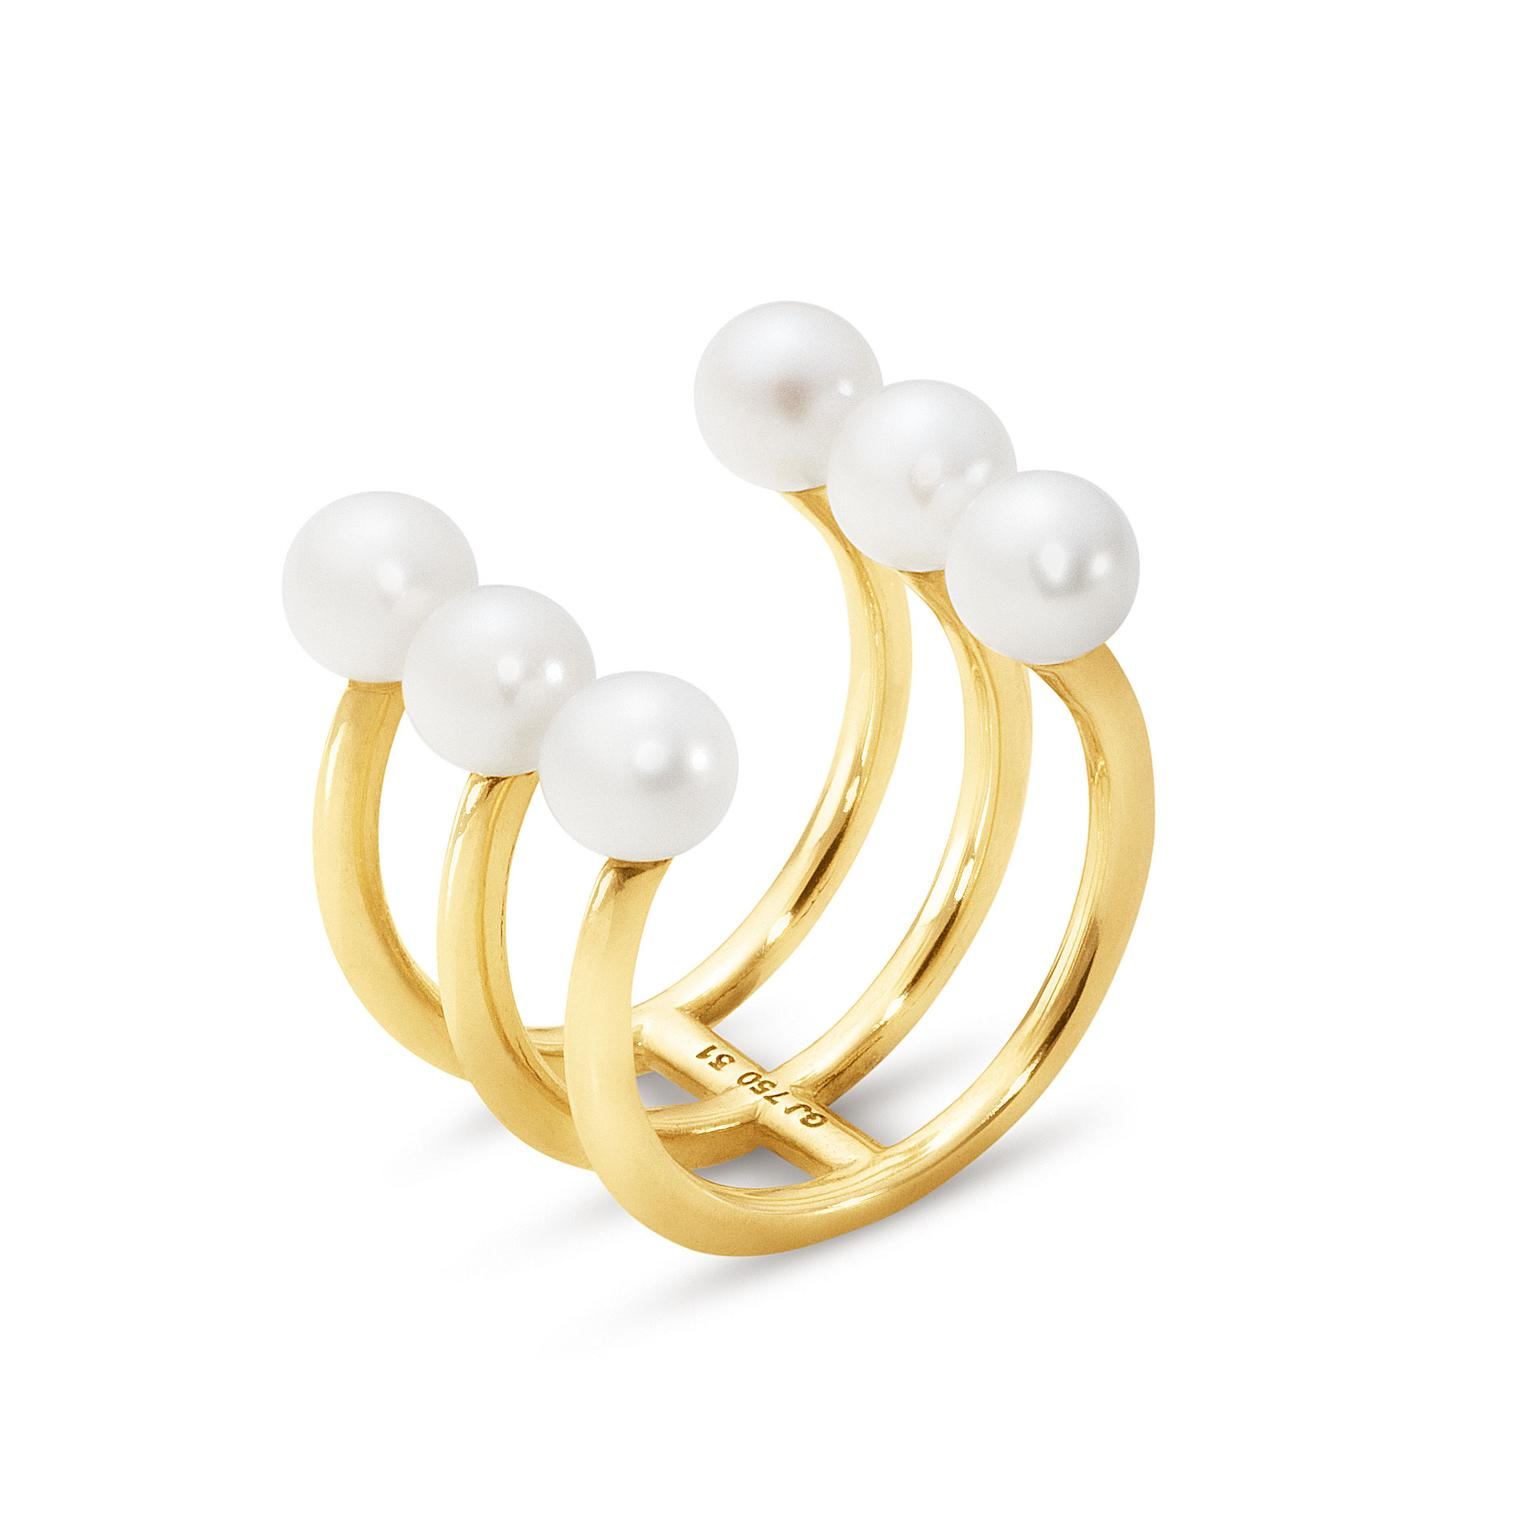 Georg Jensen Neva Collection 18ct yellow gold ring set with white cultured Freshwater pearls